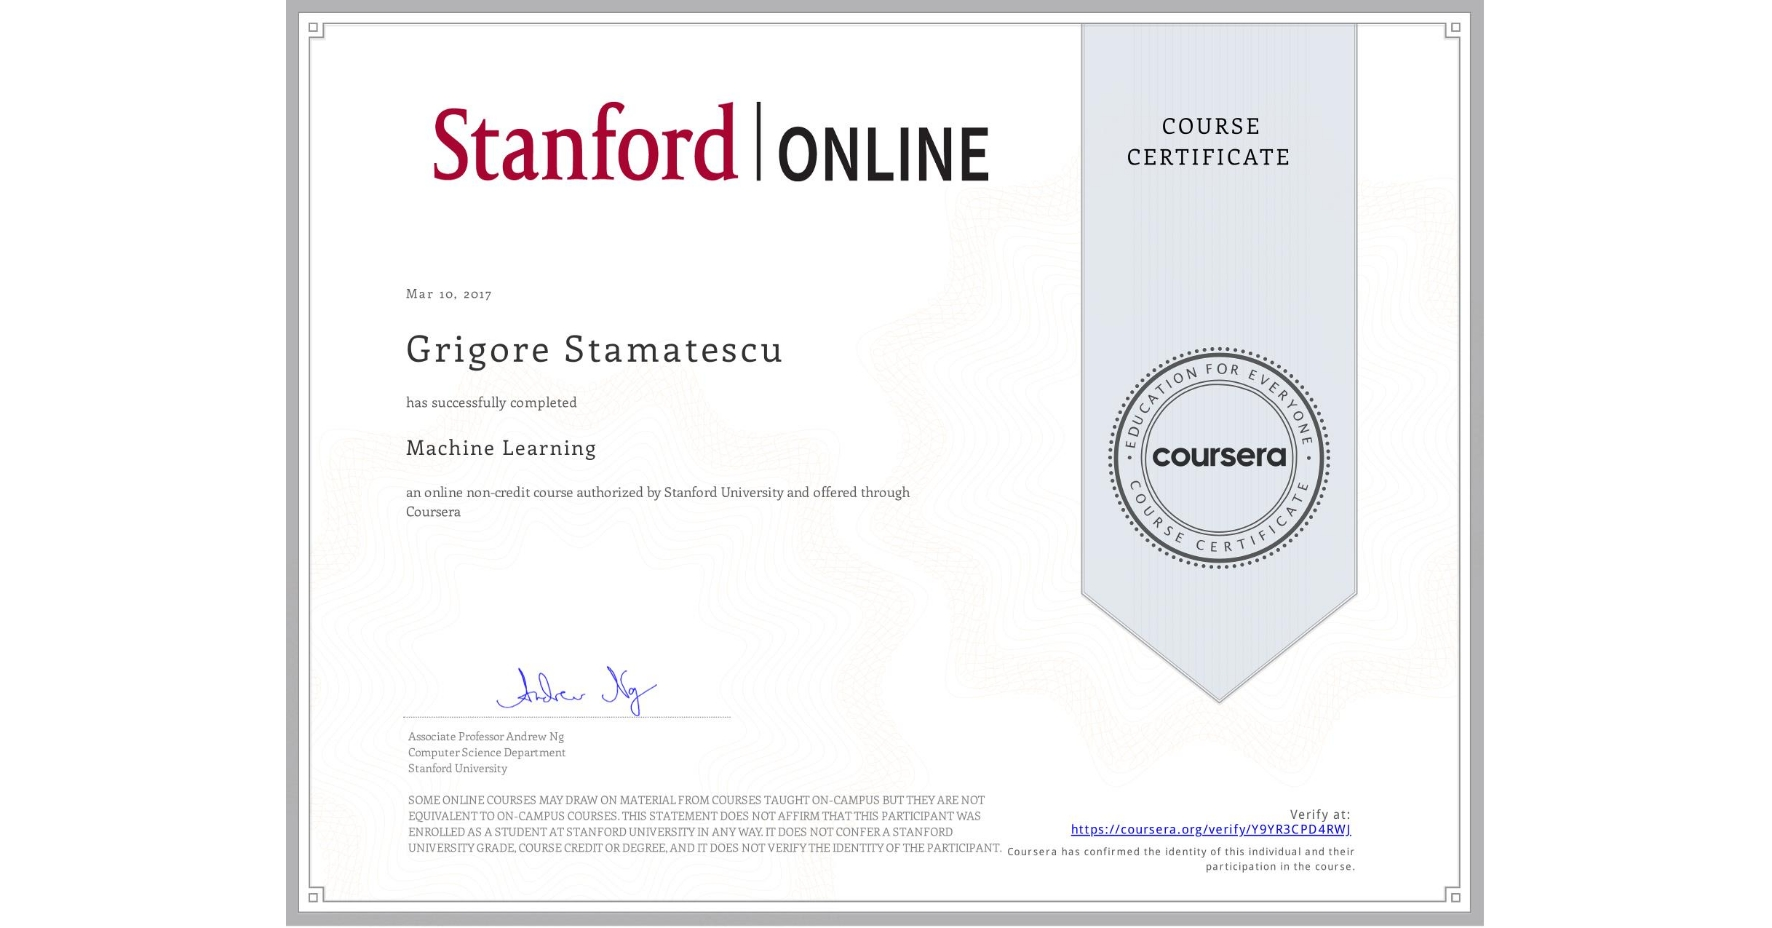 View certificate for Grigore Stamatescu, Machine Learning, an online non-credit course authorized by Stanford University and offered through Coursera